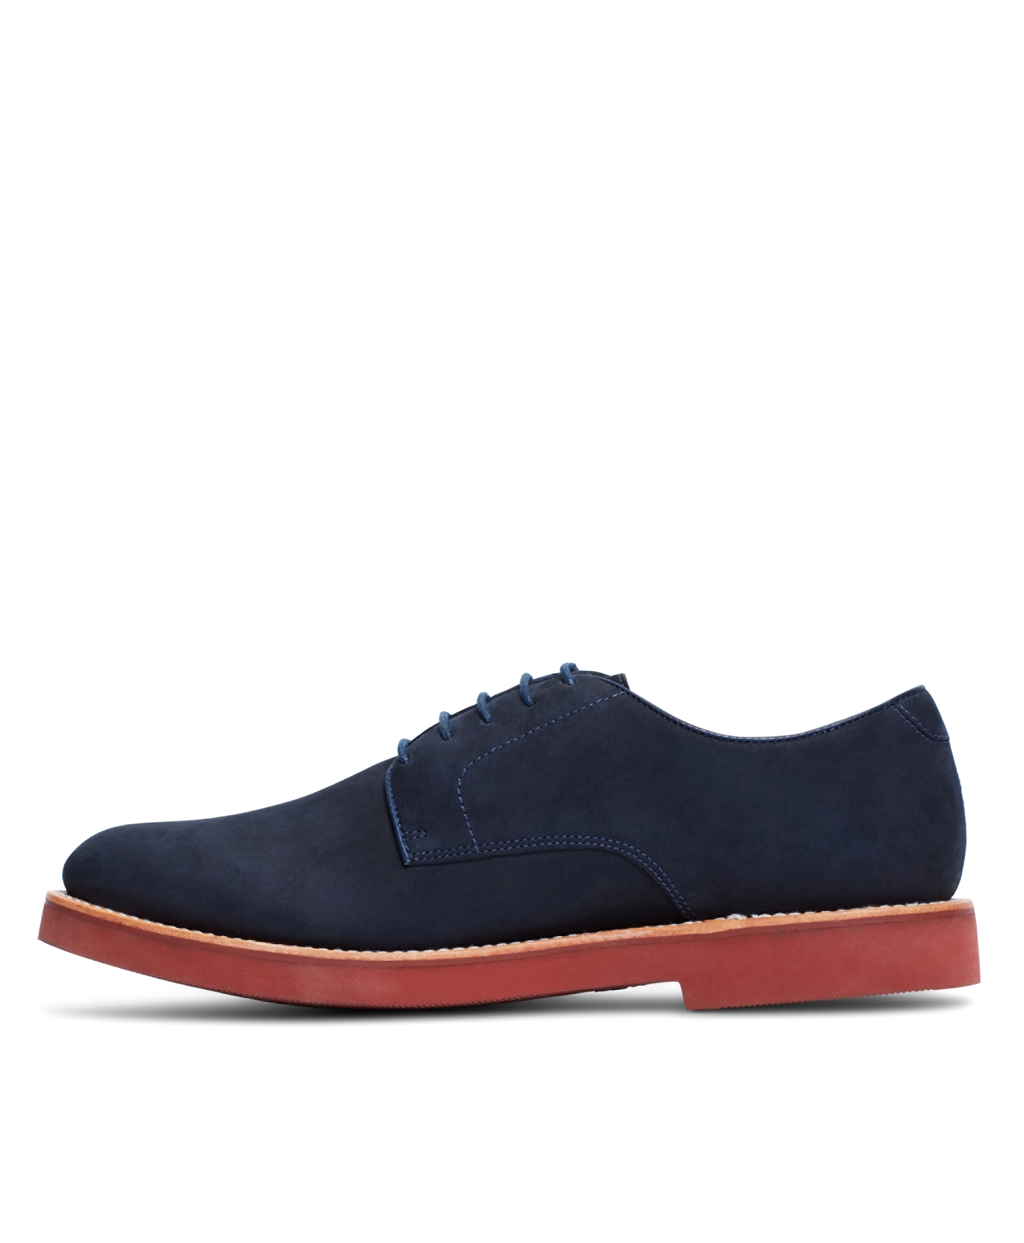 navy nubuck red sole lace up